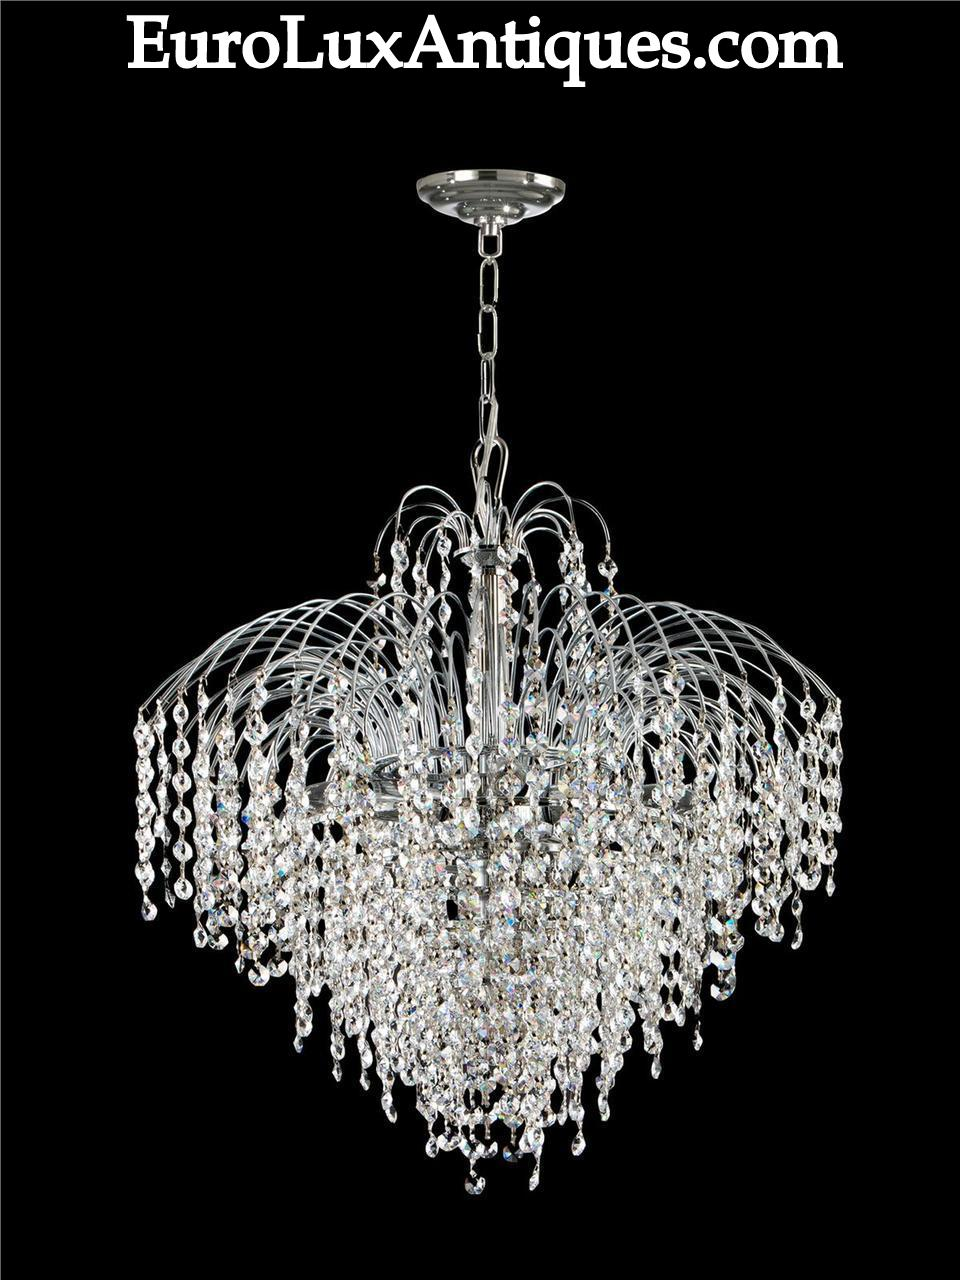 Dale Tiffany Crystal chandelier